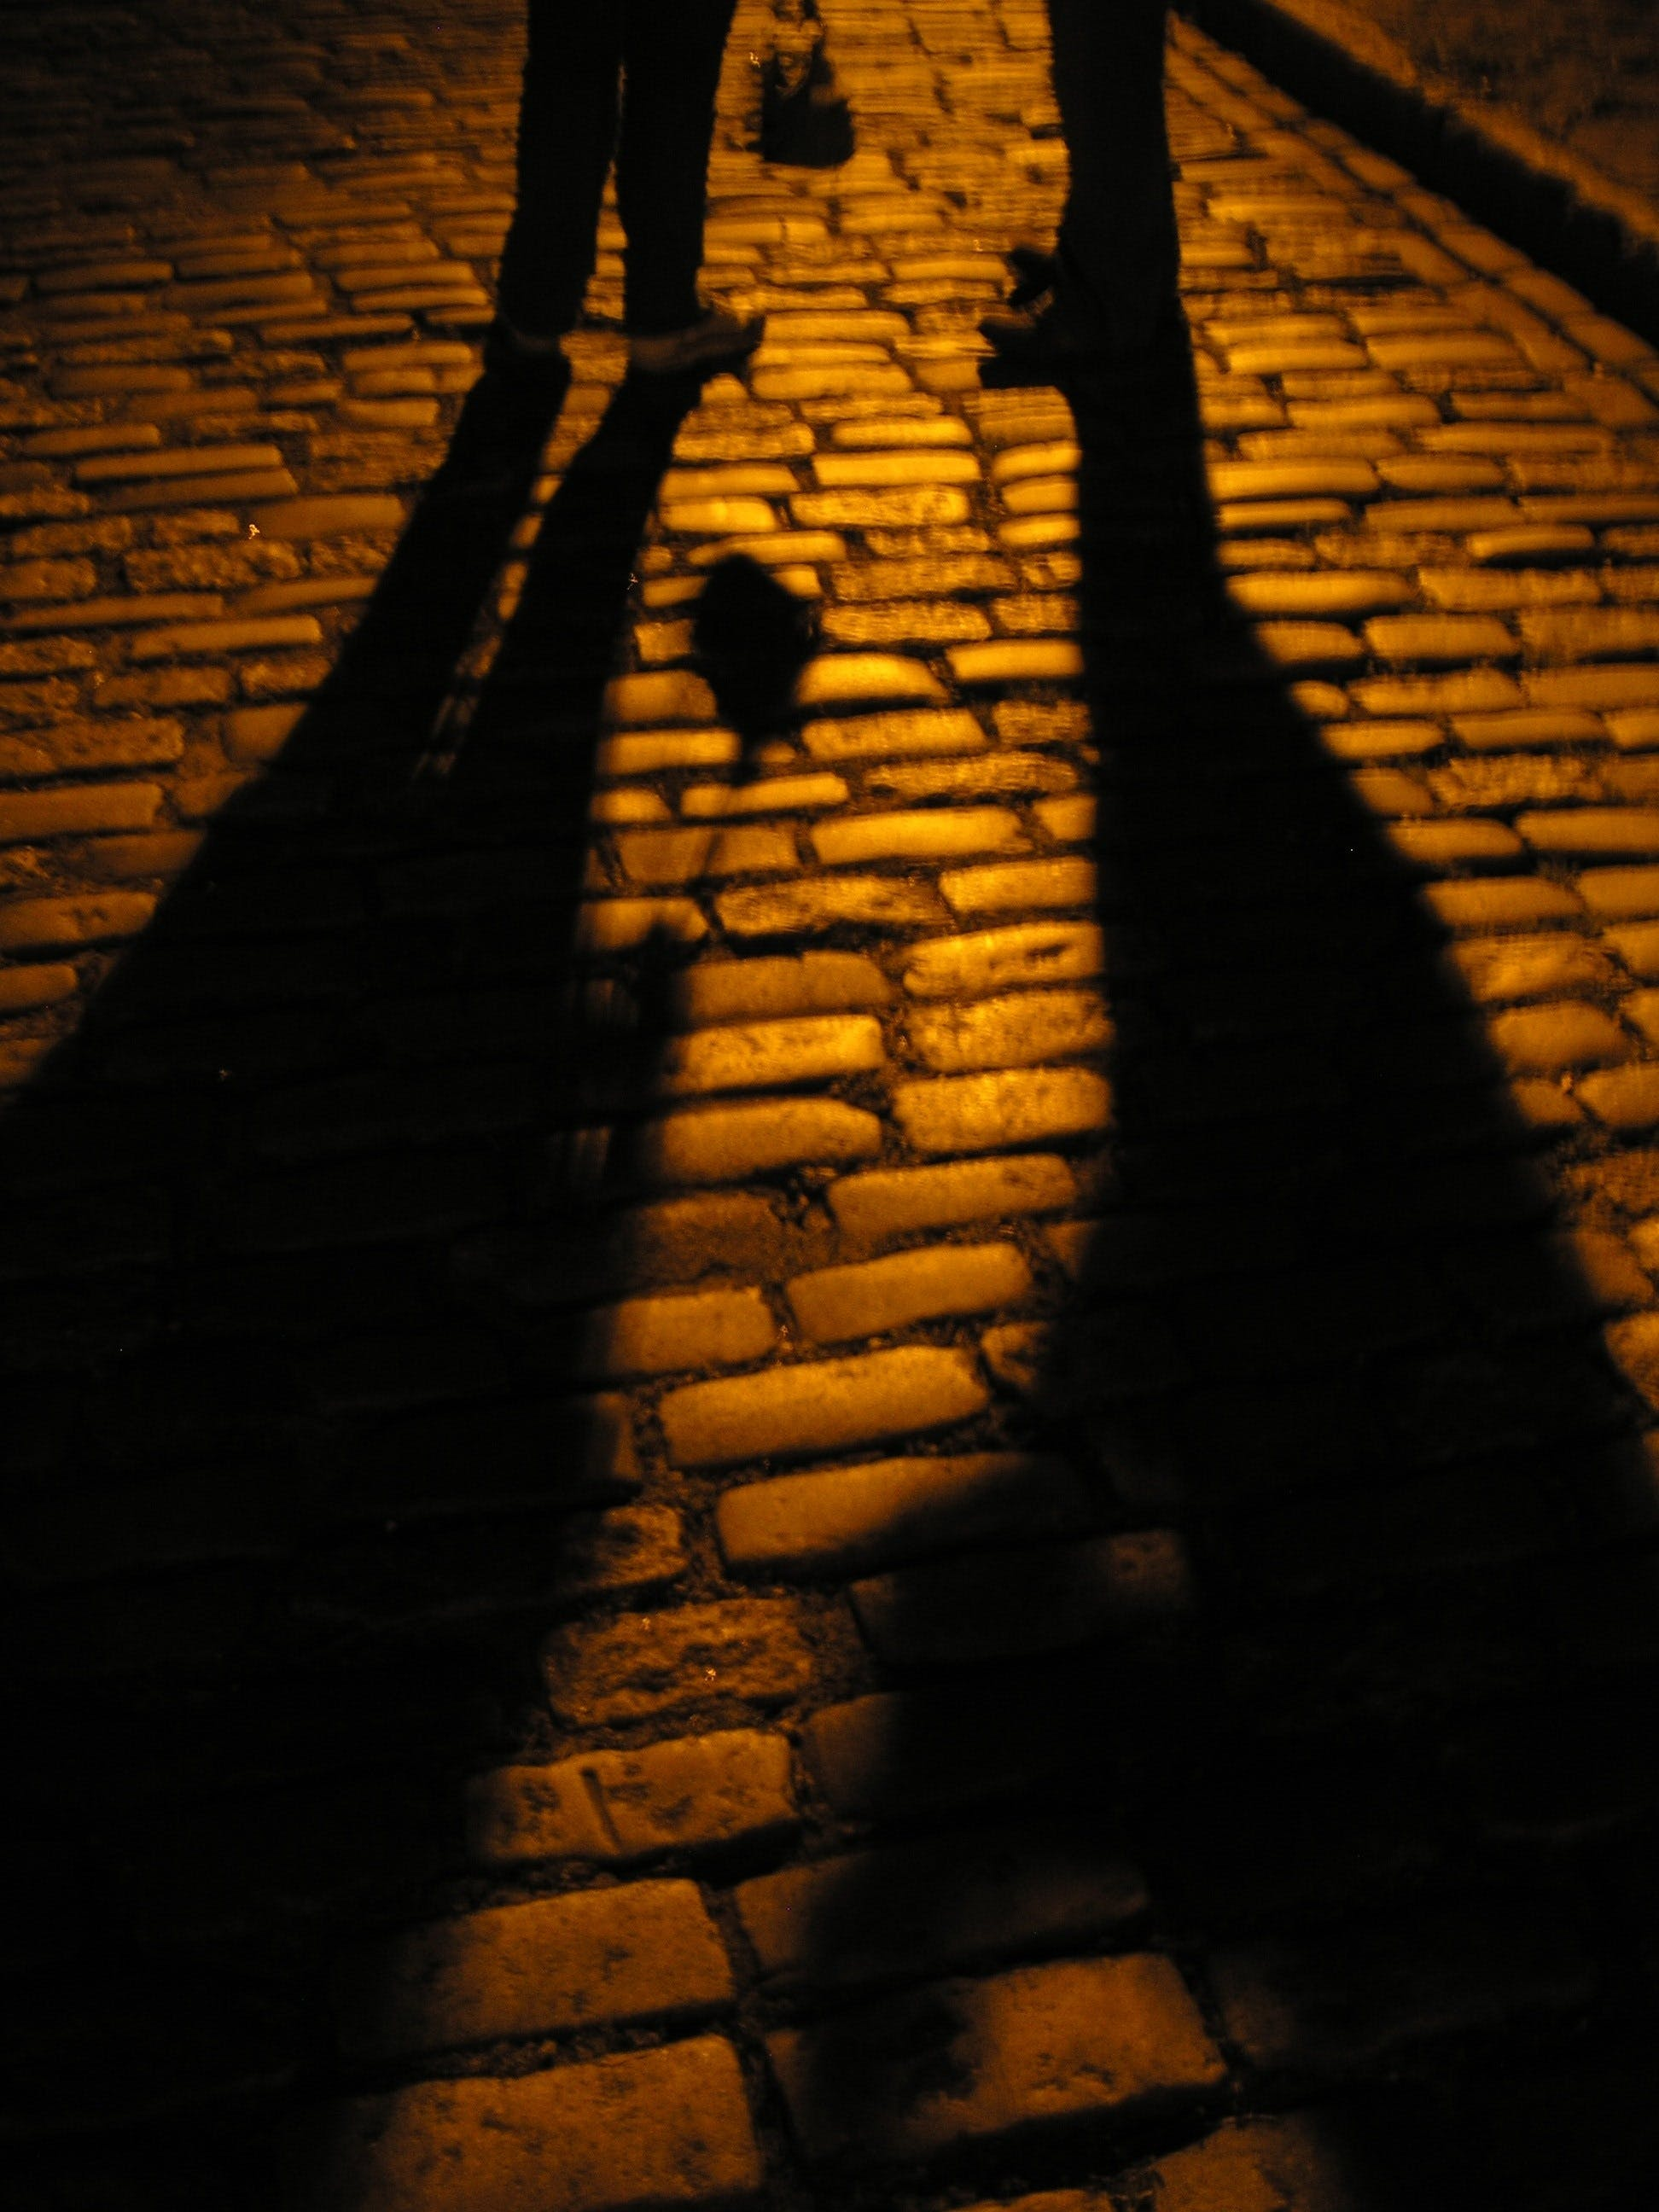 cobblestone, meeting, mysterious